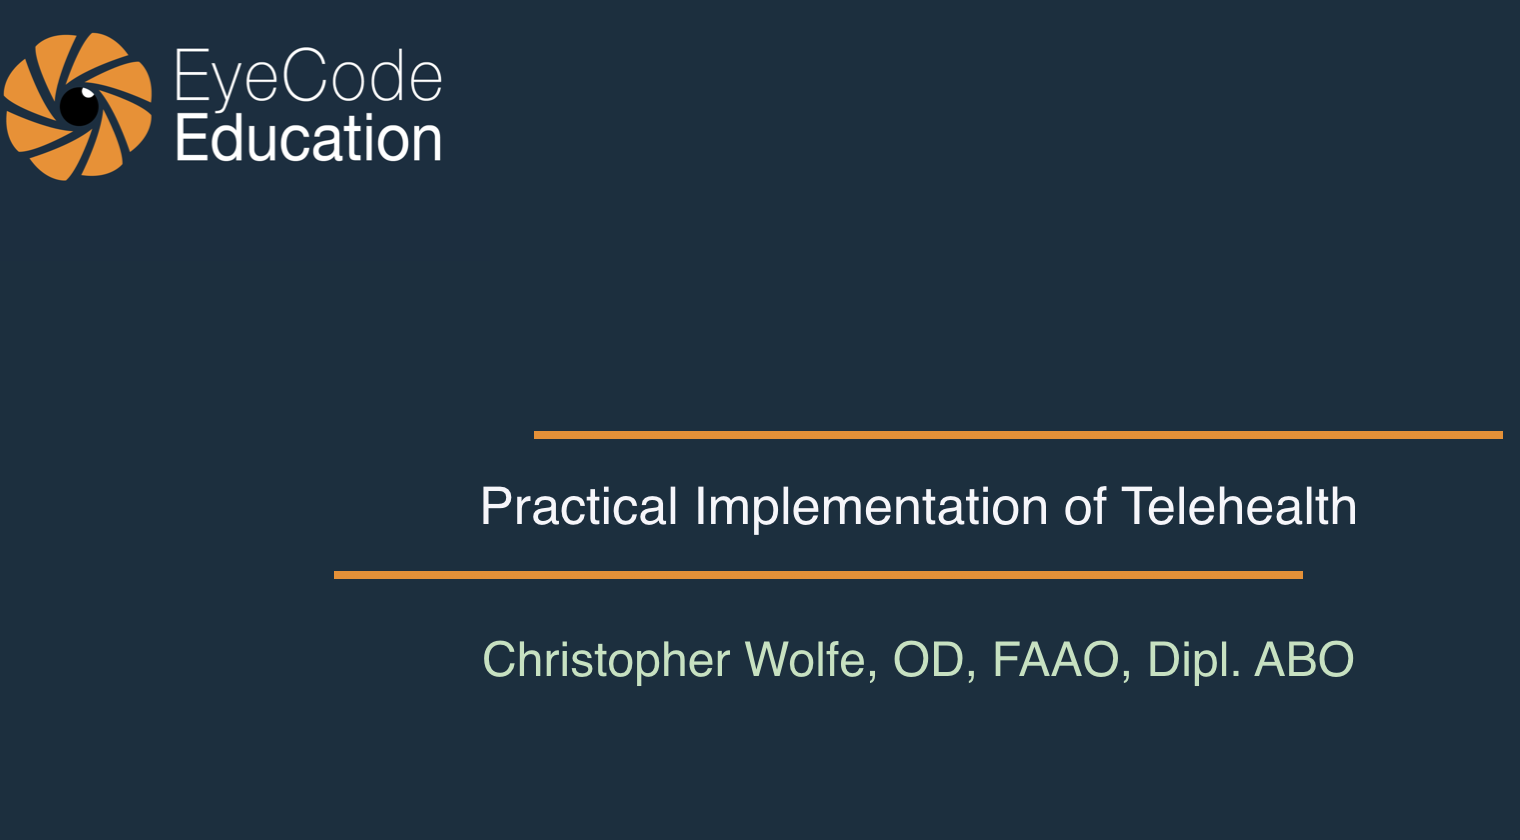 Practical Implementation of Telehealth Services in Eye Care